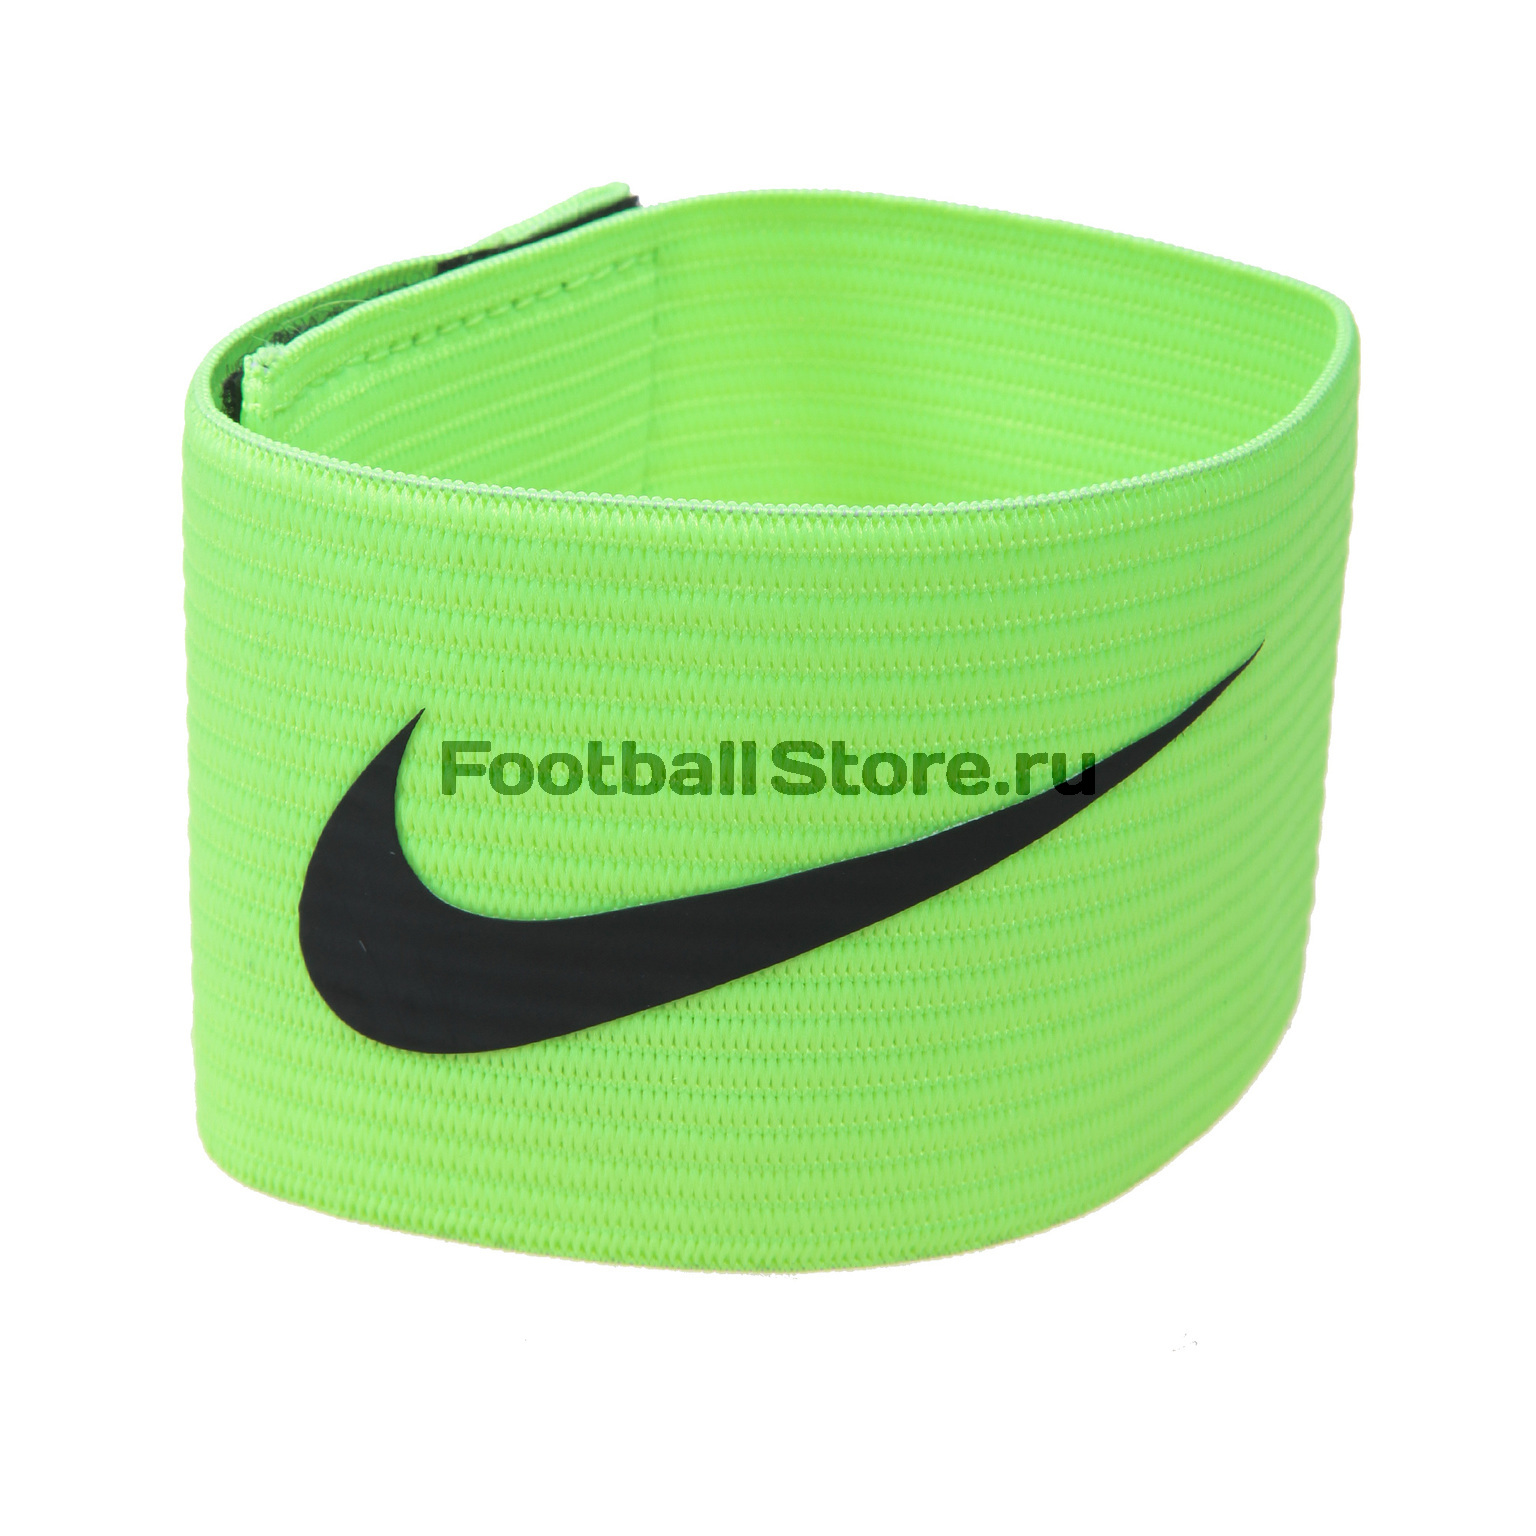 Повязки Nike Капитанская повязка Nike ARM Band N.SN.05.710.OS спортинвентарь nike чехол для смартфона на руку nike printed lean arm band n rn 68 439 os